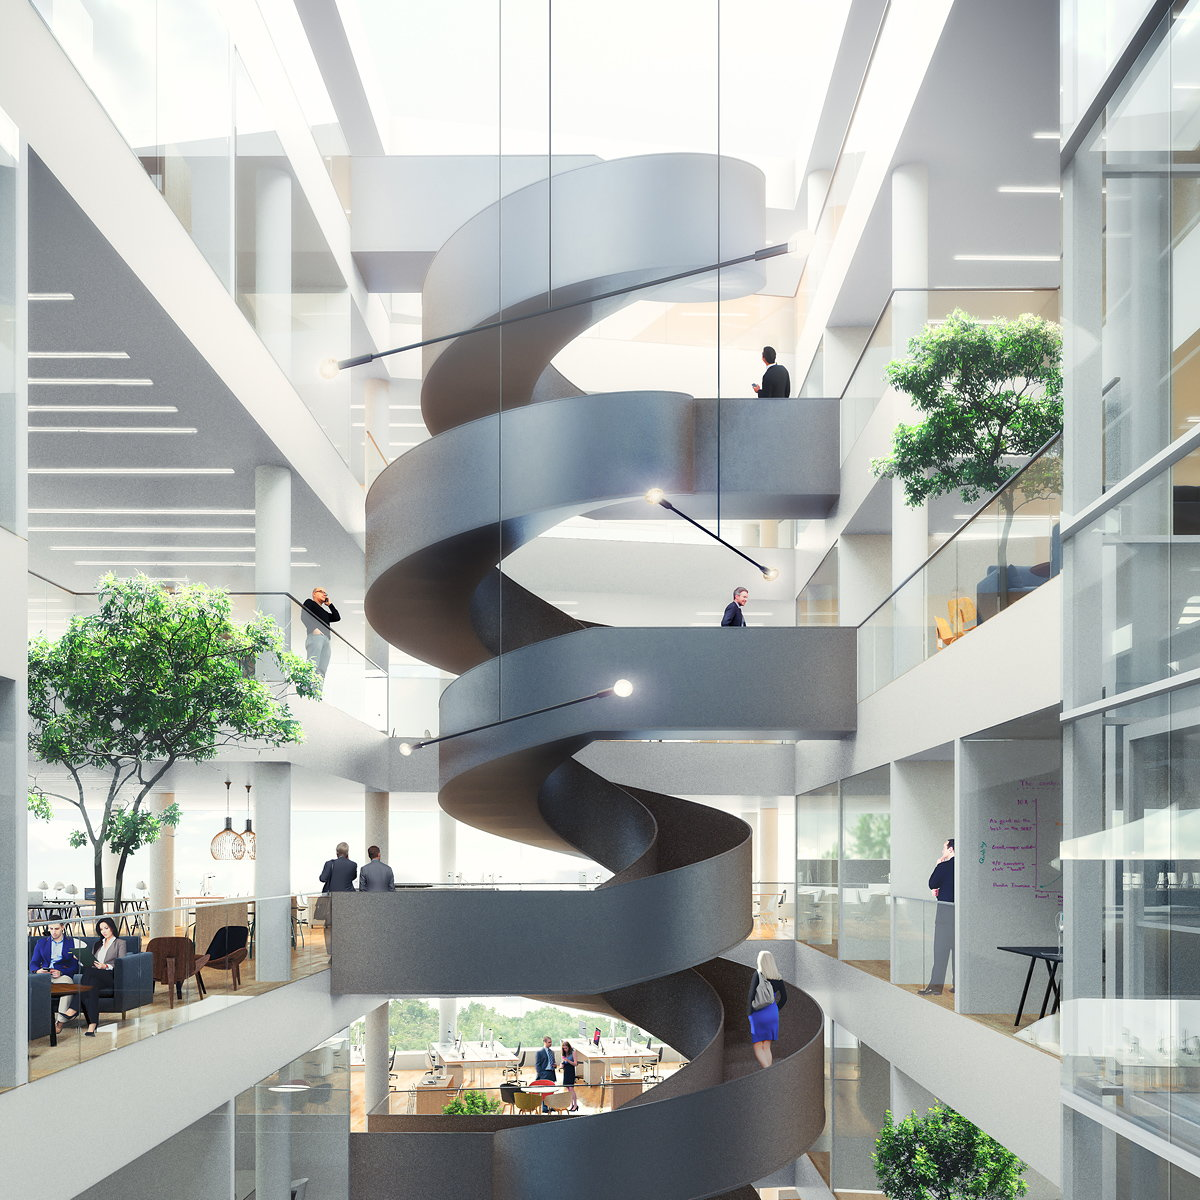 Schmidt Hammer Lassen Architects to Design New Campus Complex for Norwegian Geotechnical Institute